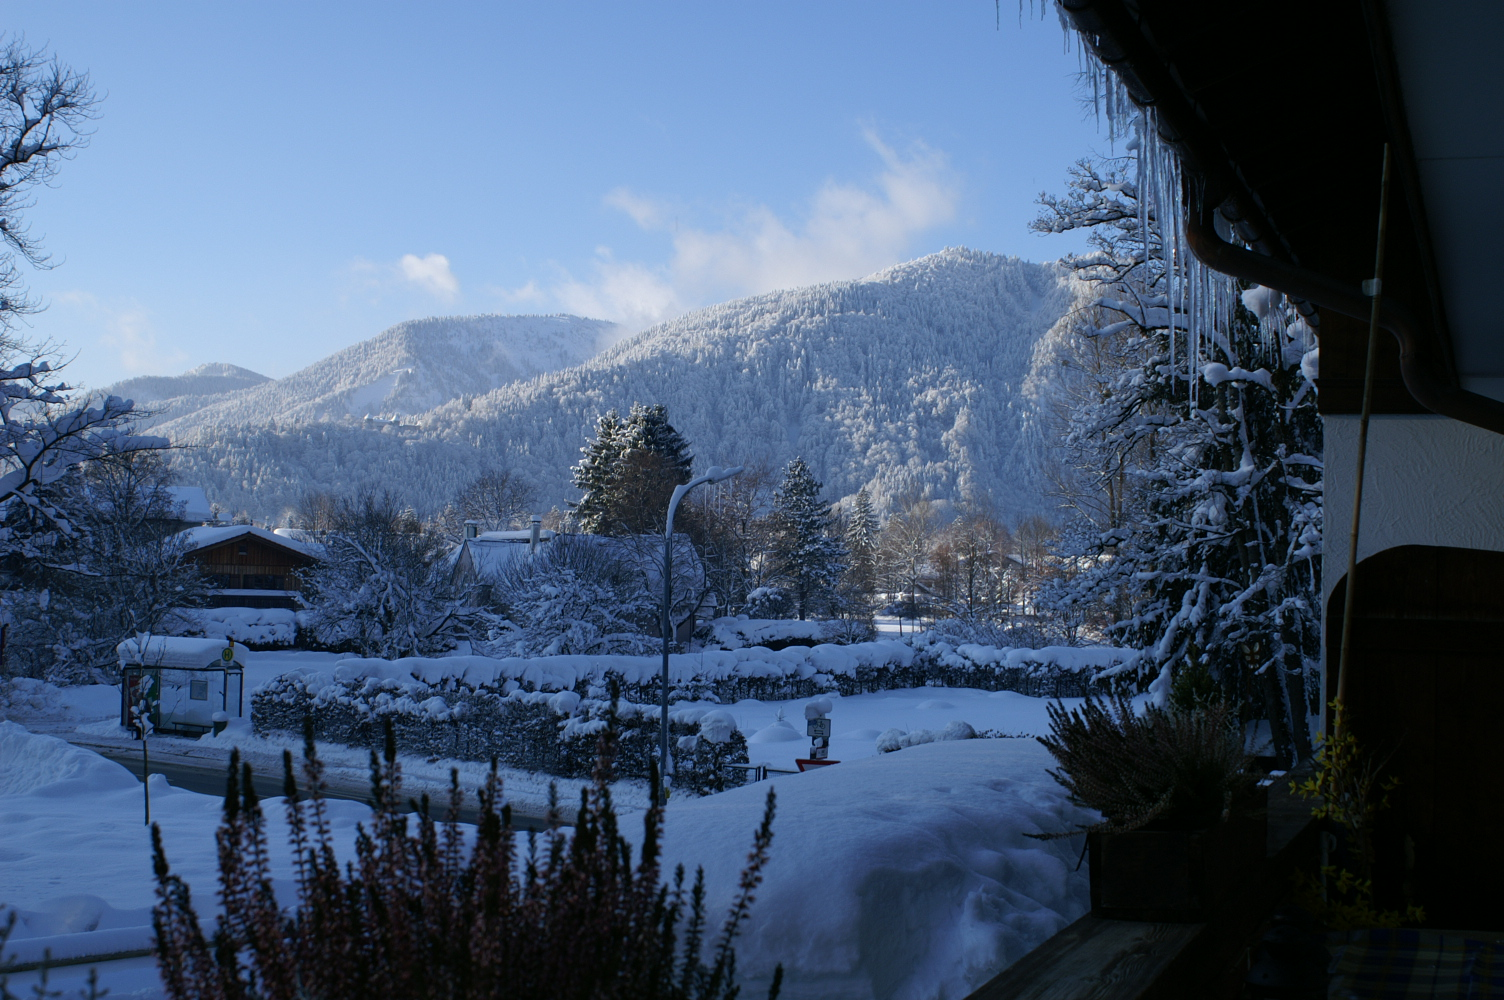 Tiefer Schnee in Tegernsee